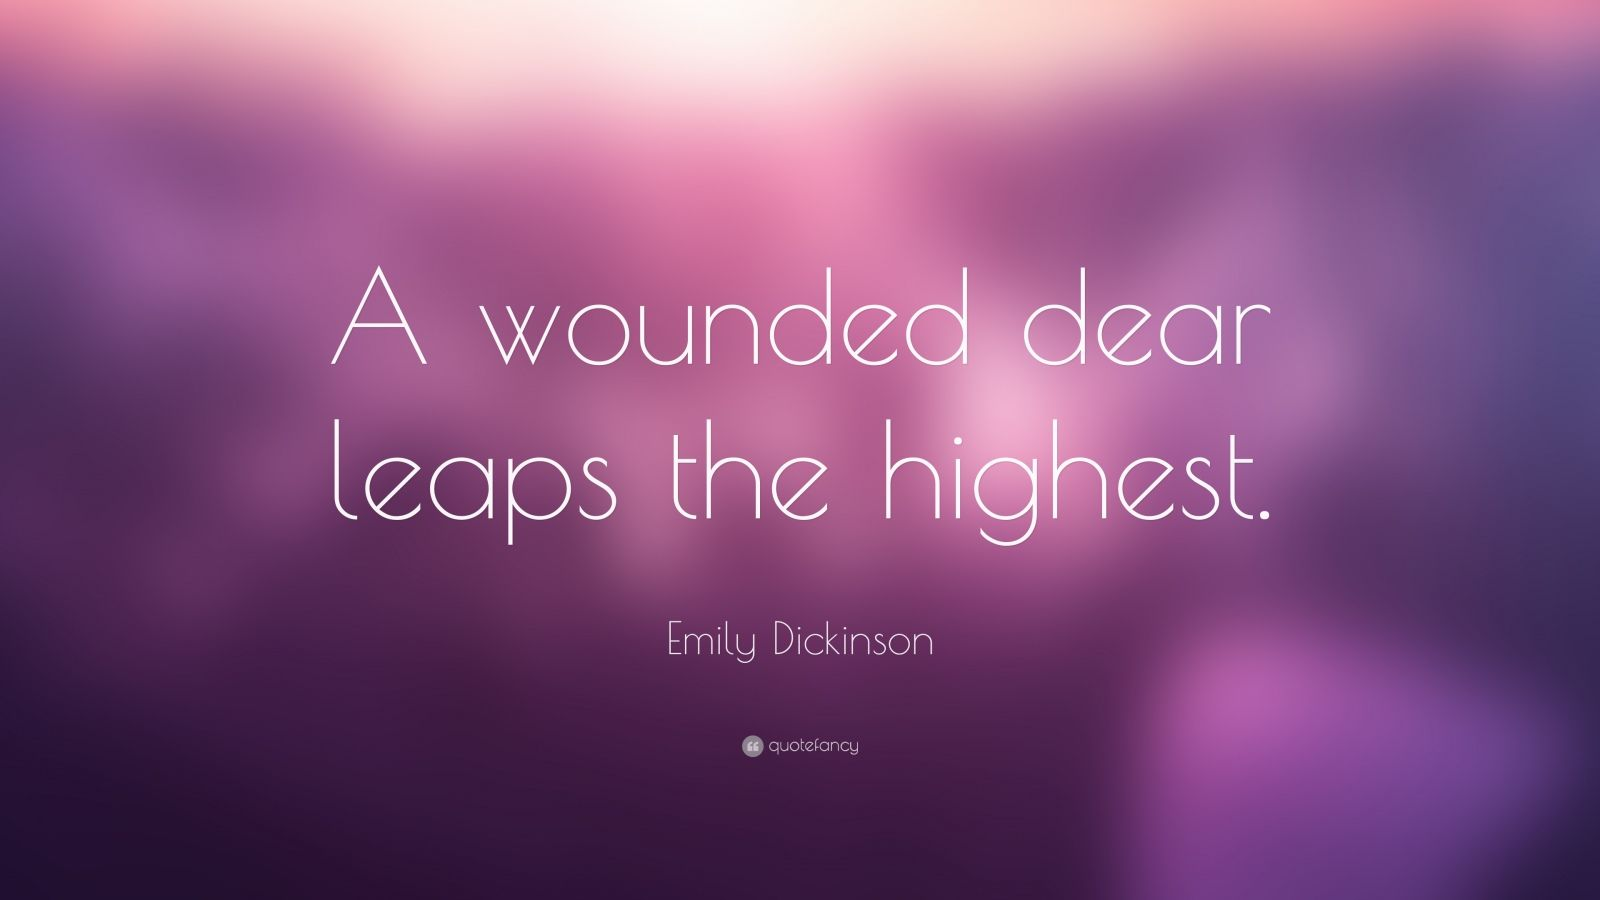 emily dickinson quotes 52 wallpapers quotefancy